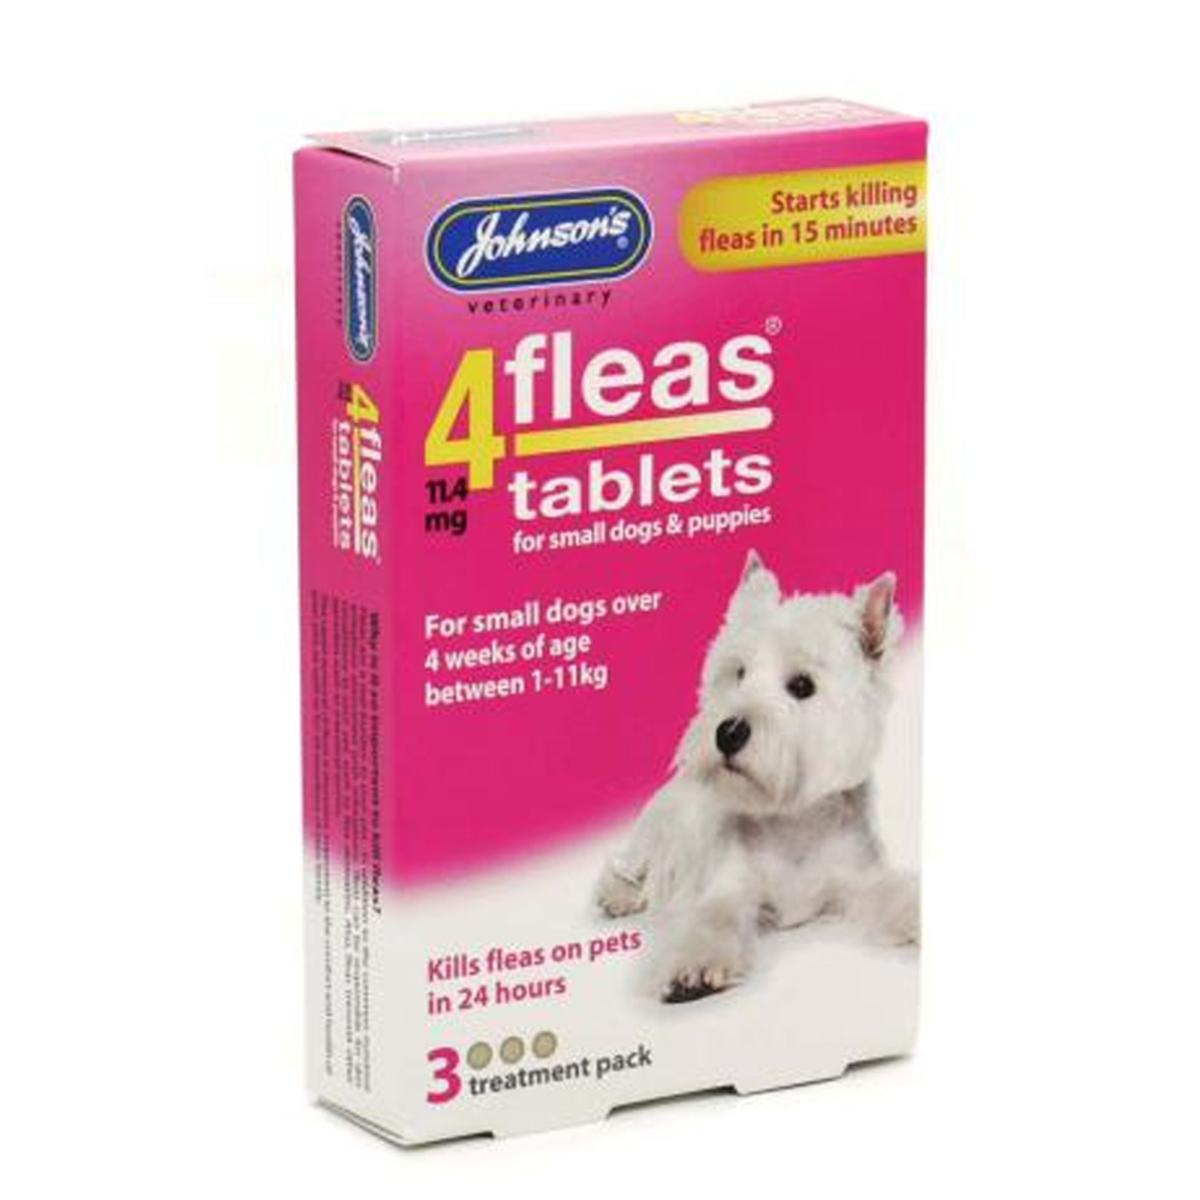 Johnsons 4Fleas Flea Removal Tablets For Small Dogs (1kg